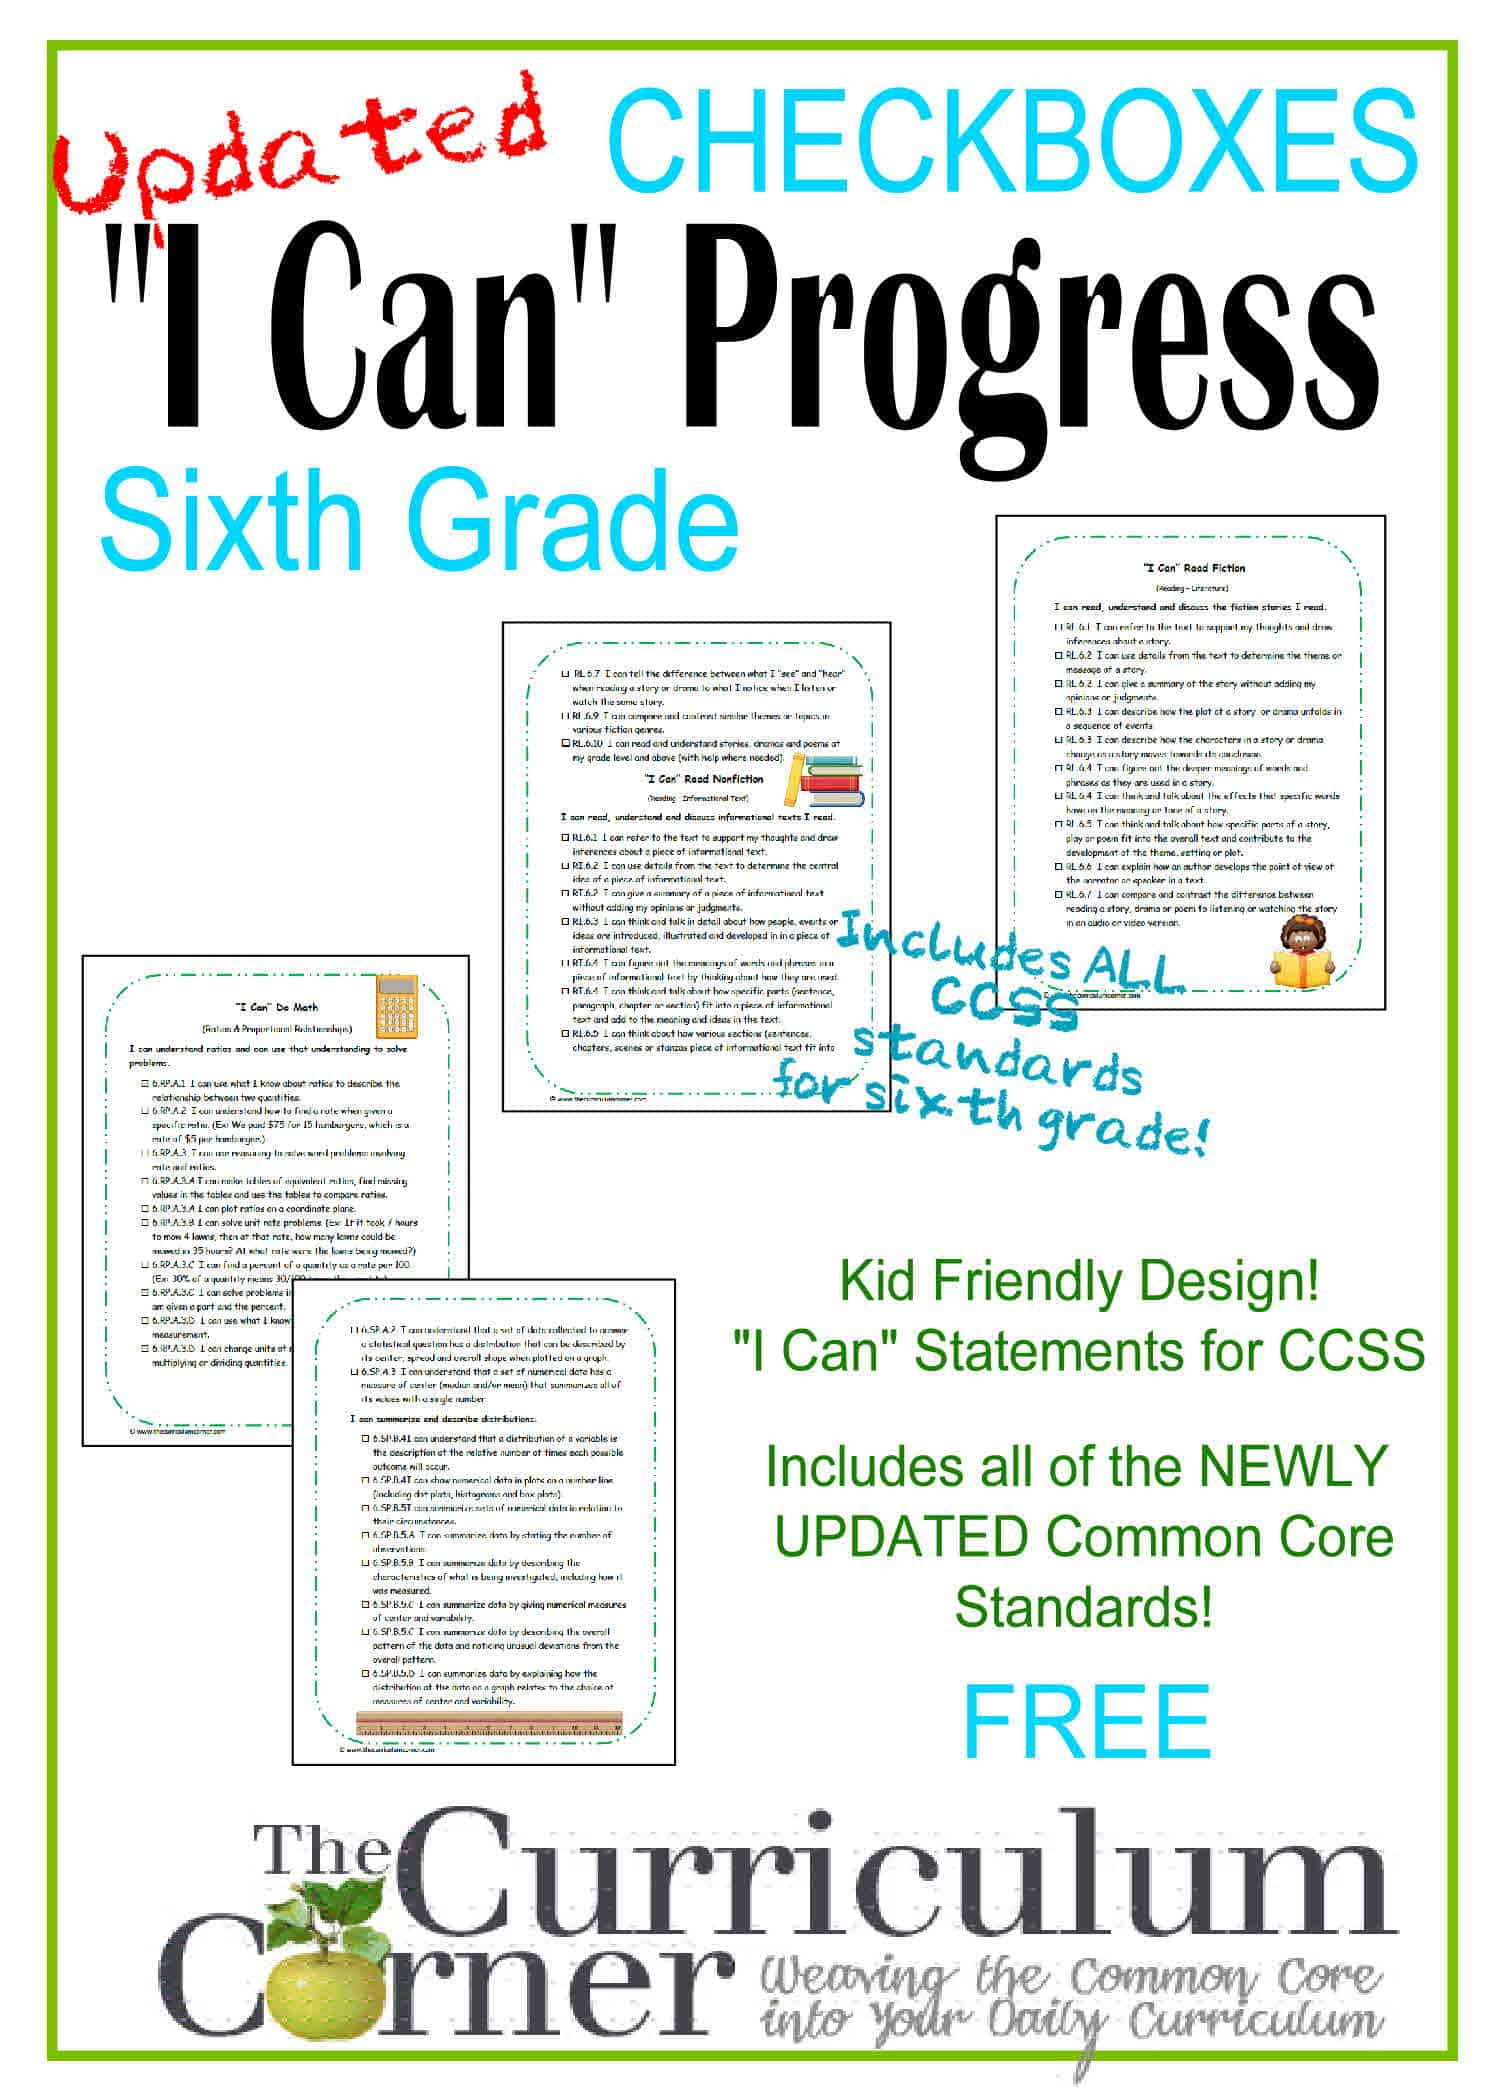 Kid Clip Art I Can Statements 6th Grade Ccss Checkboxes